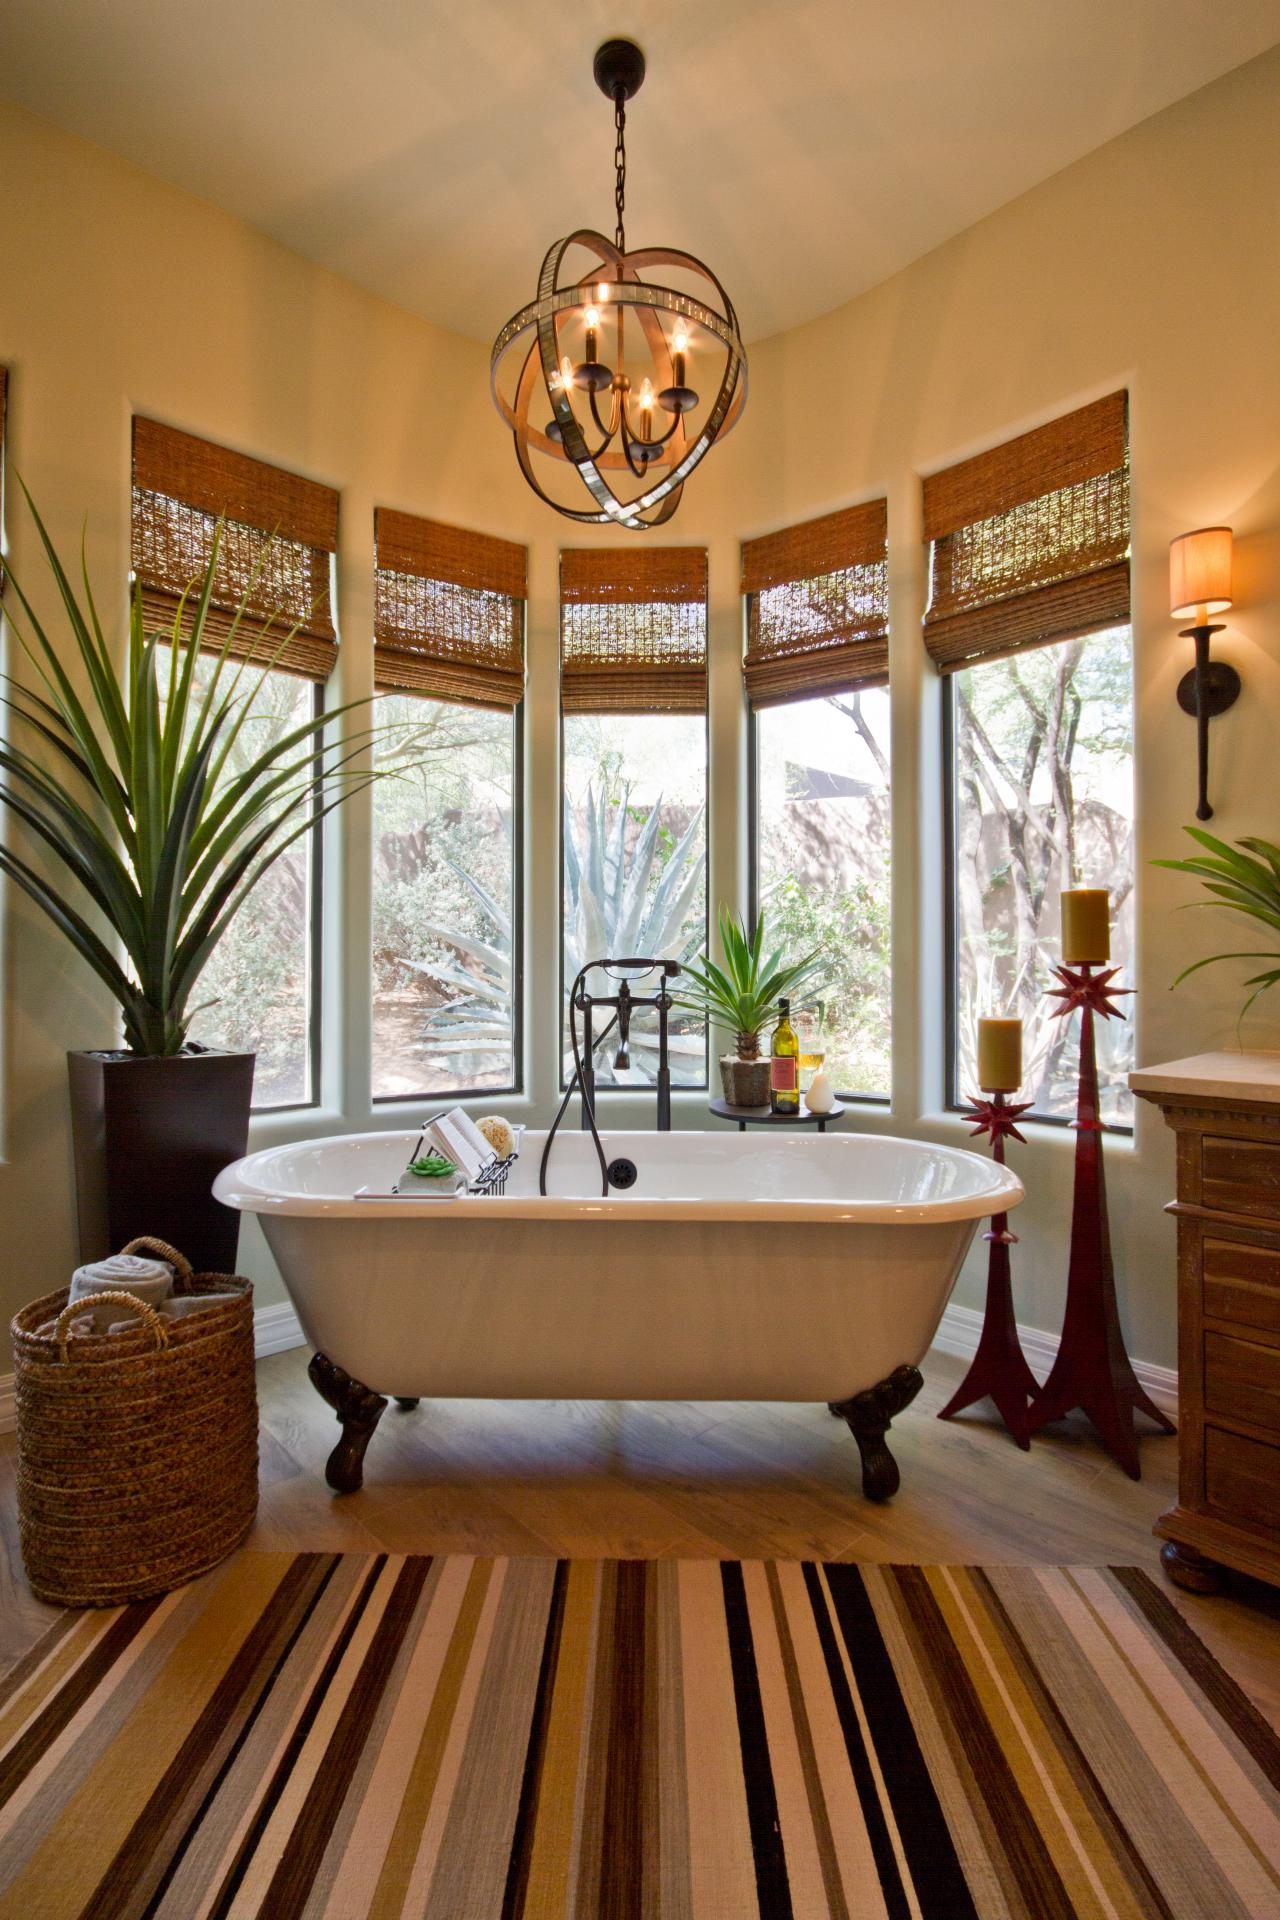 Sultry-Southwestern-Bathroom-With-White-Clawfoot-Tub